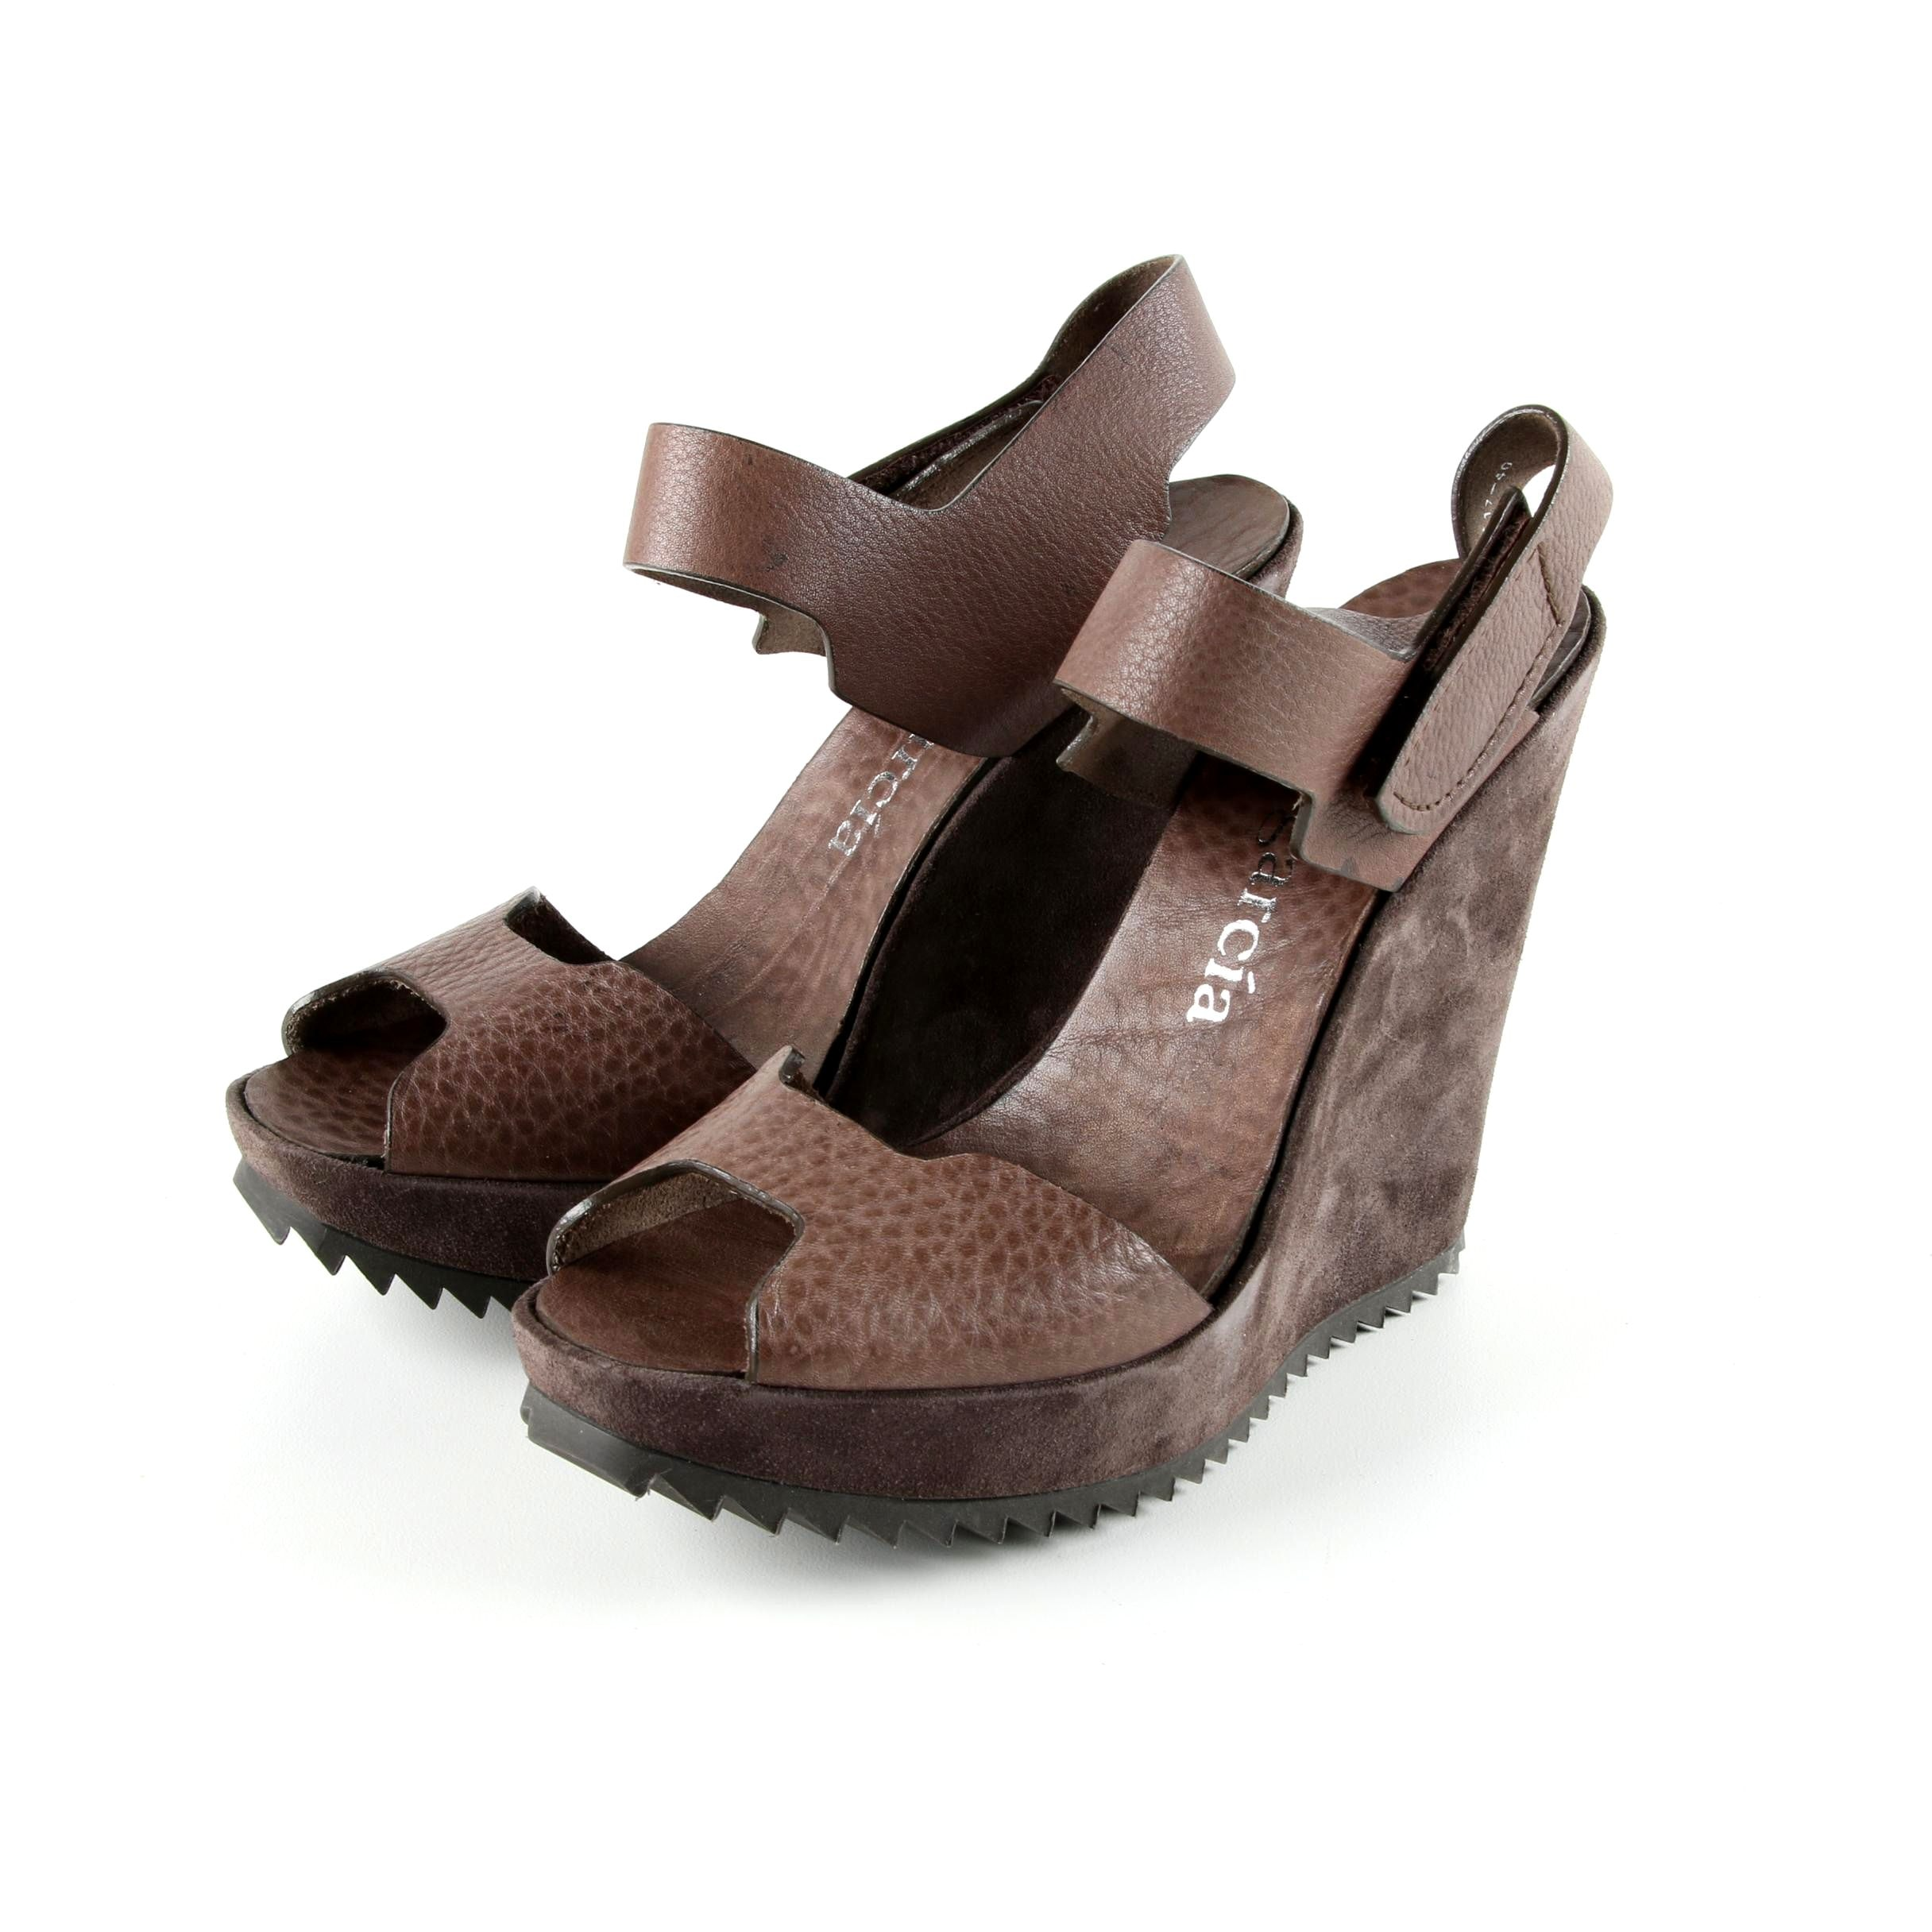 Pedro Garcia Vevay Brown Suede and Pebbled Leather Velcro Wedge Sandals